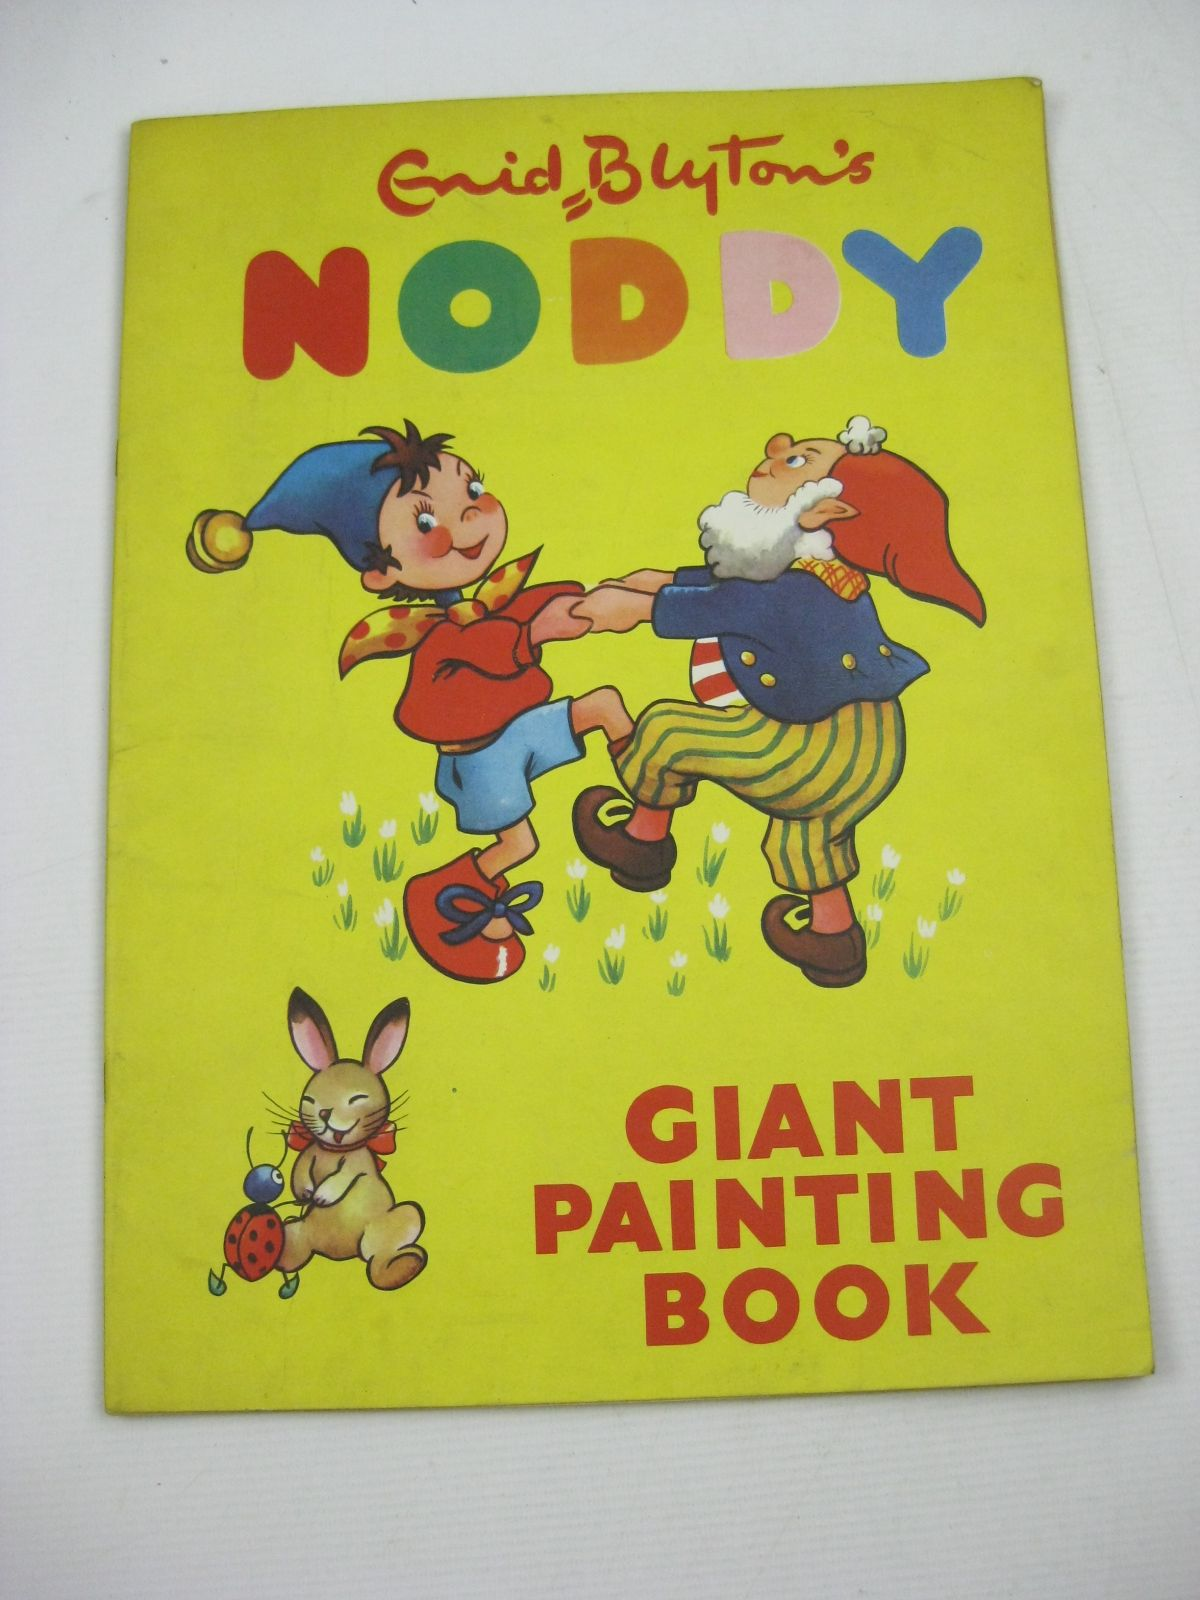 Photo of ENID BLYTON'S NODDY GIANT PAINTING BOOK written by Blyton, Enid published by Sampson Low, Marston & Co. Ltd., Pleiades Books Ltd. (STOCK CODE: 1404603)  for sale by Stella & Rose's Books